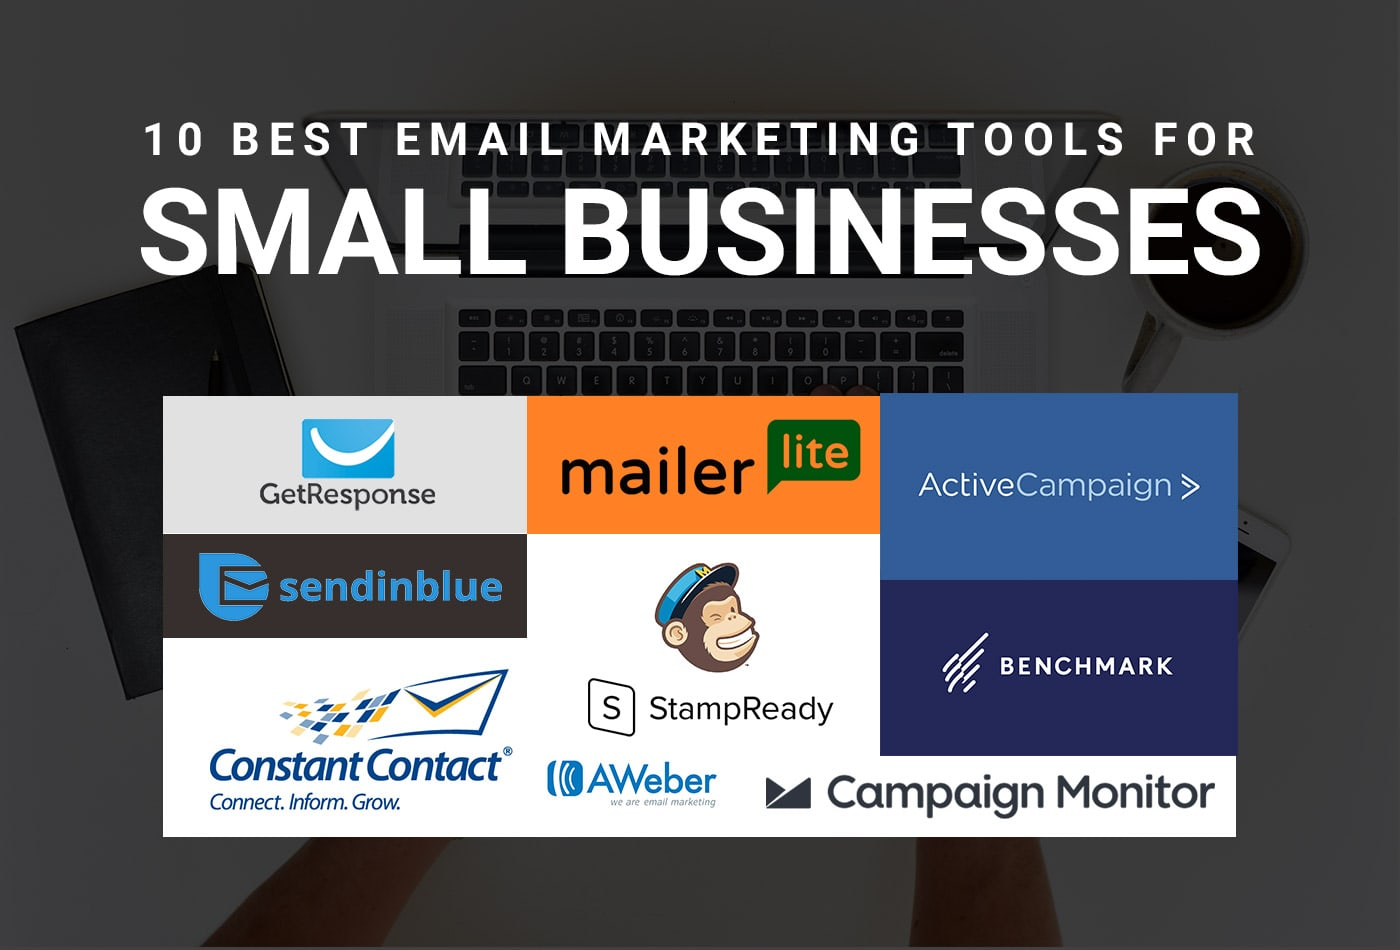 10 best email marketing tools for small businesses